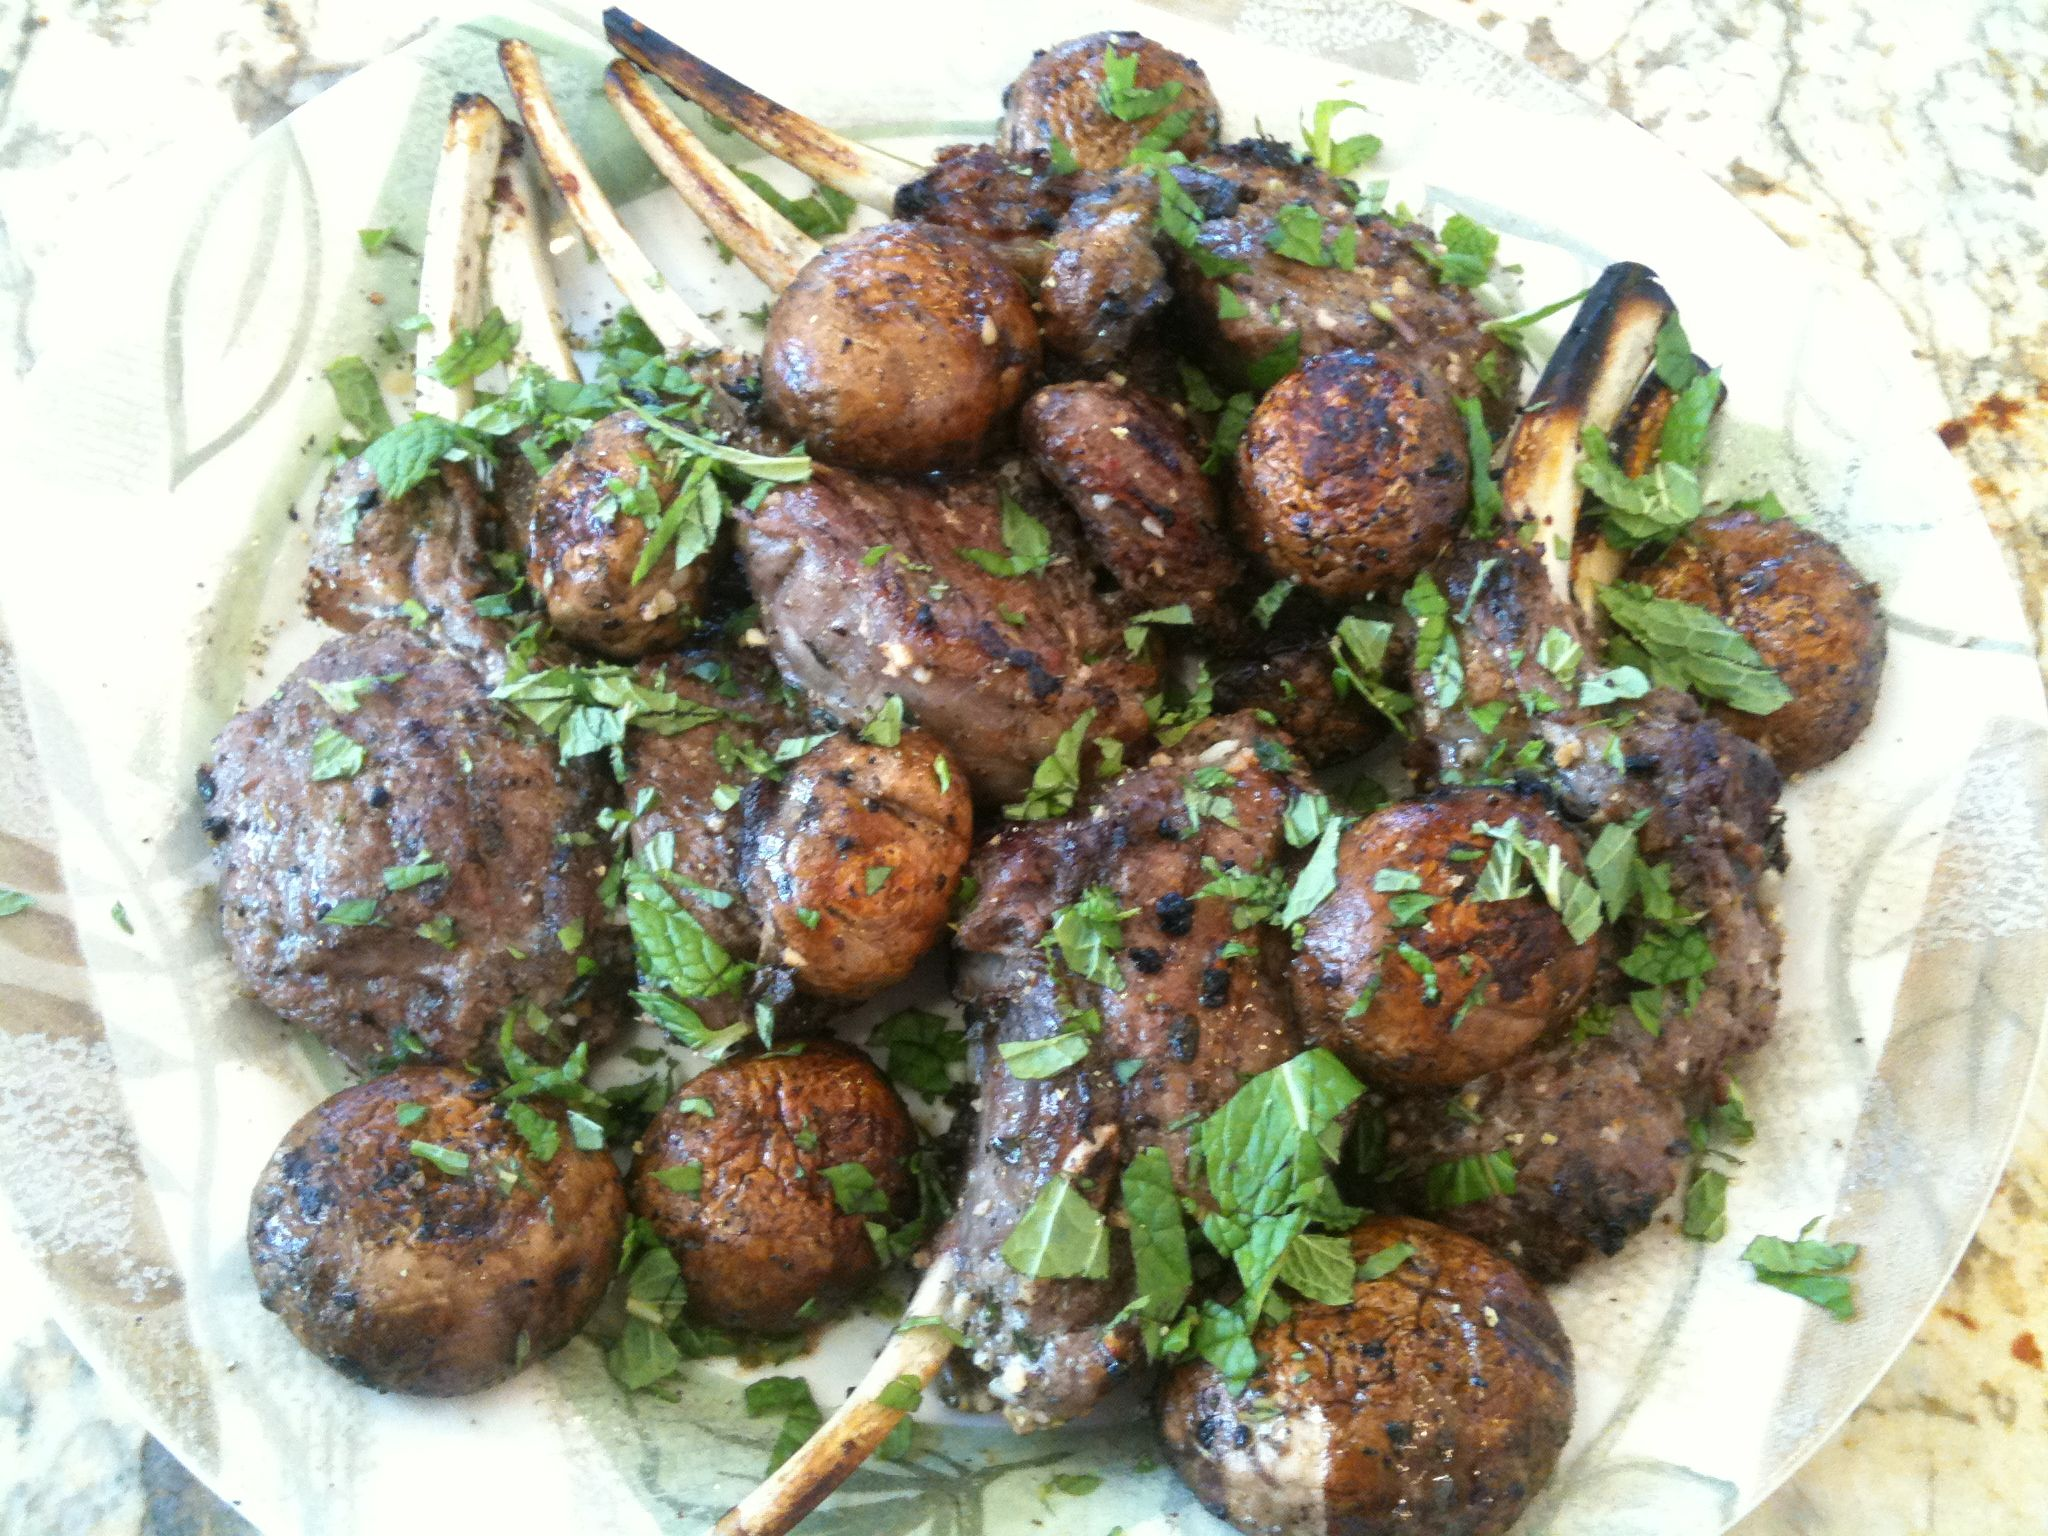 Grilled Porcini Mushrooms With Mint And Garlic Recipes — Dishmaps